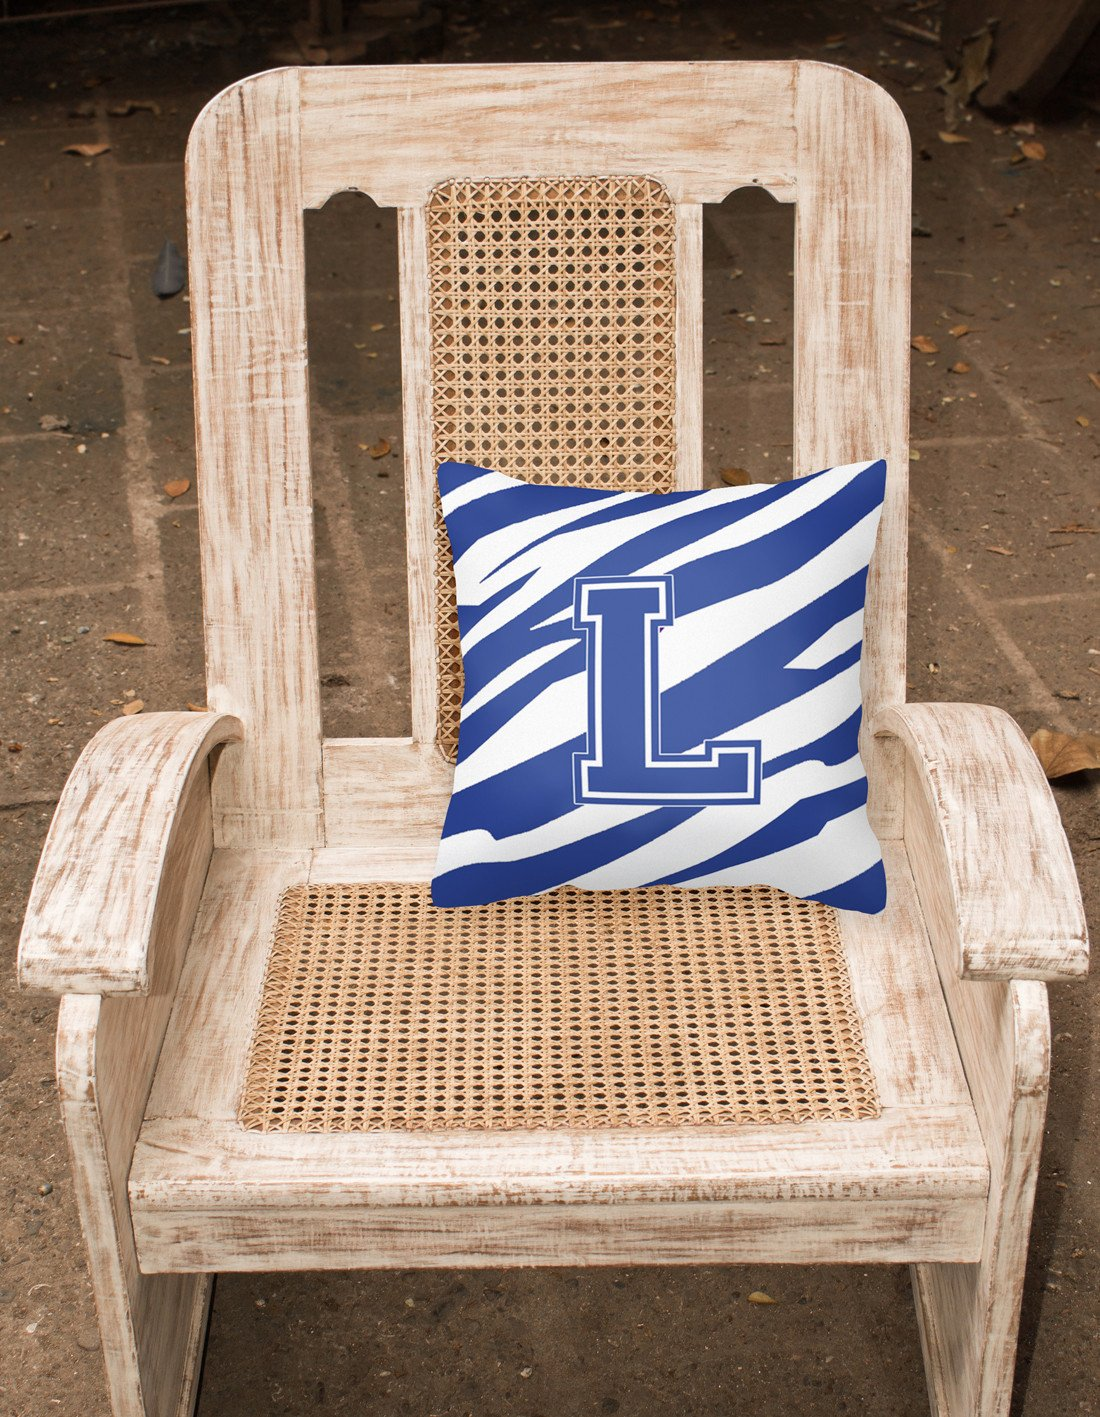 Monogram Initial L Tiger Stripe Blue and White Decorative Canvas Fabric Pillow - the-store.com